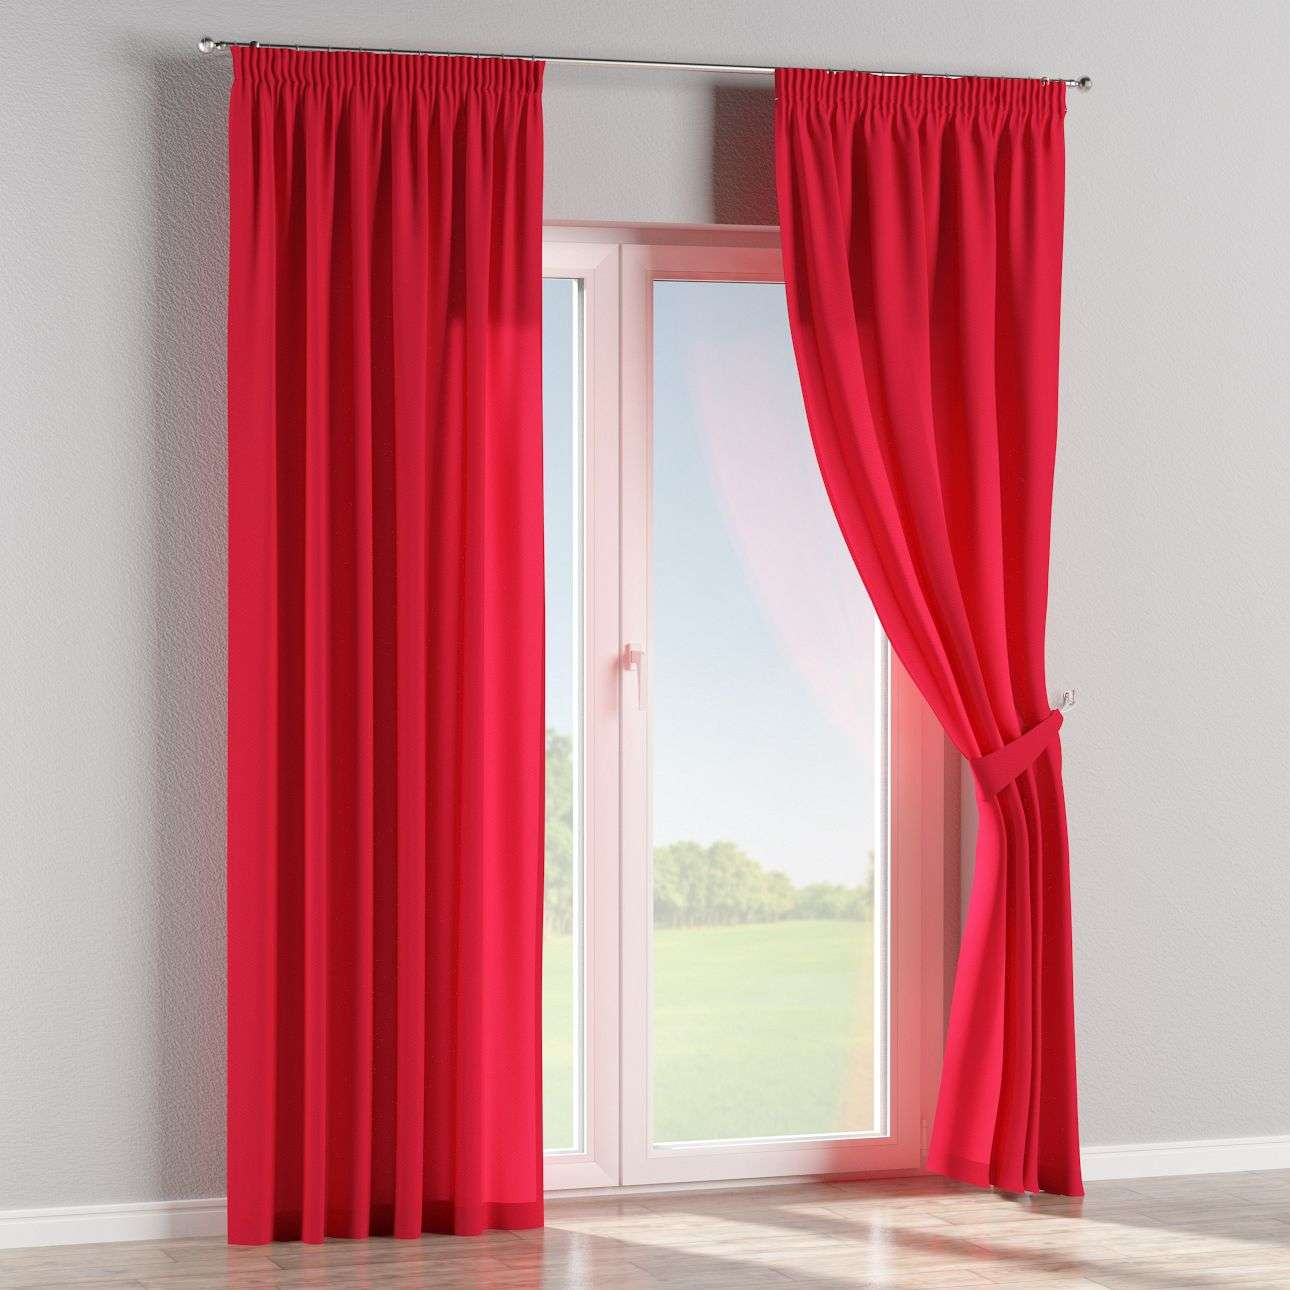 Pencil pleat curtains 130 x 260 cm (51 x 102 inch) in collection Quadro, fabric: 136-19